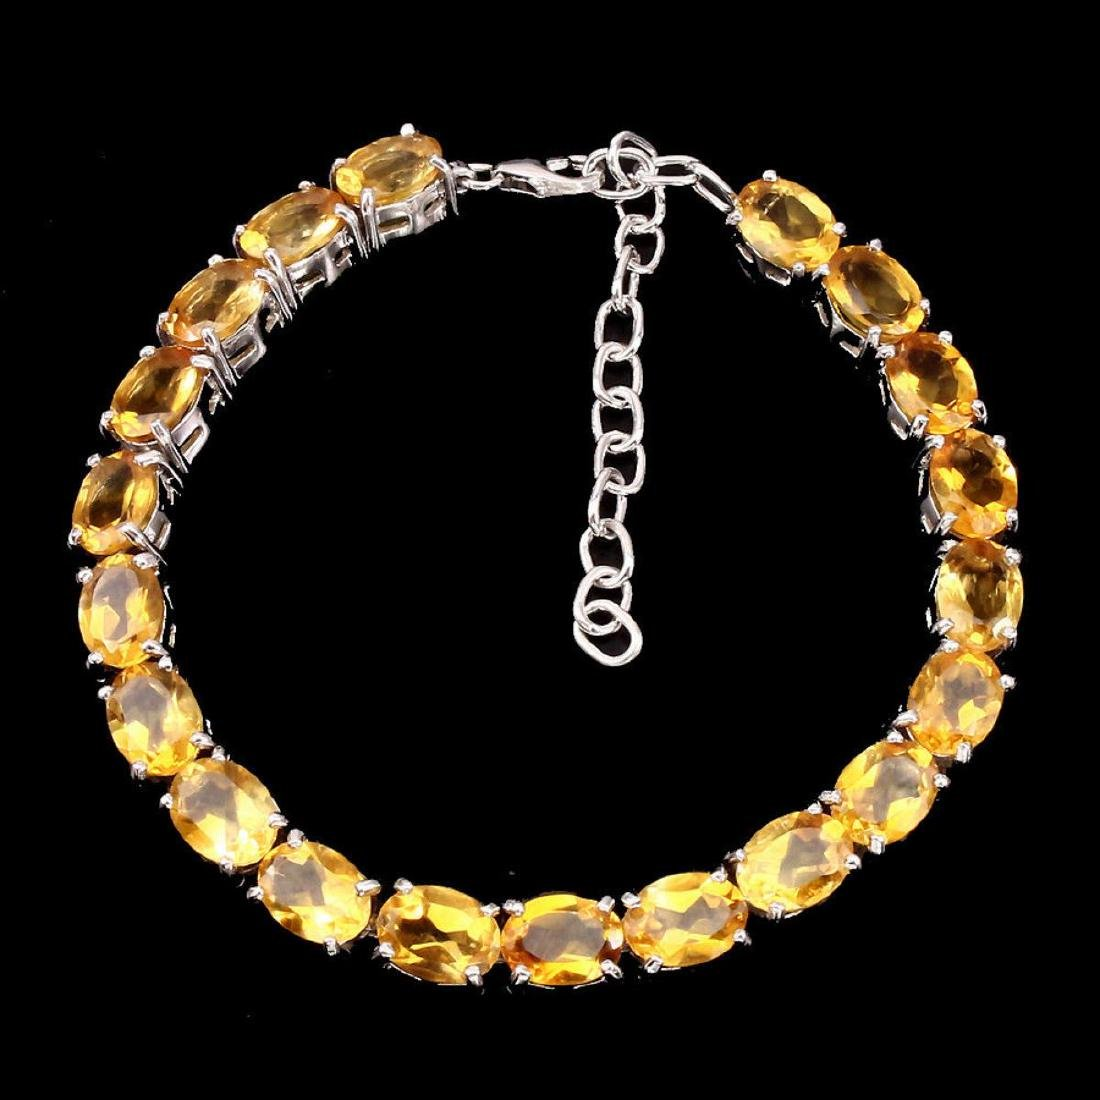 Natural Oval 8x6 mm Top Rich Yellow Citrine Bracelet - 2